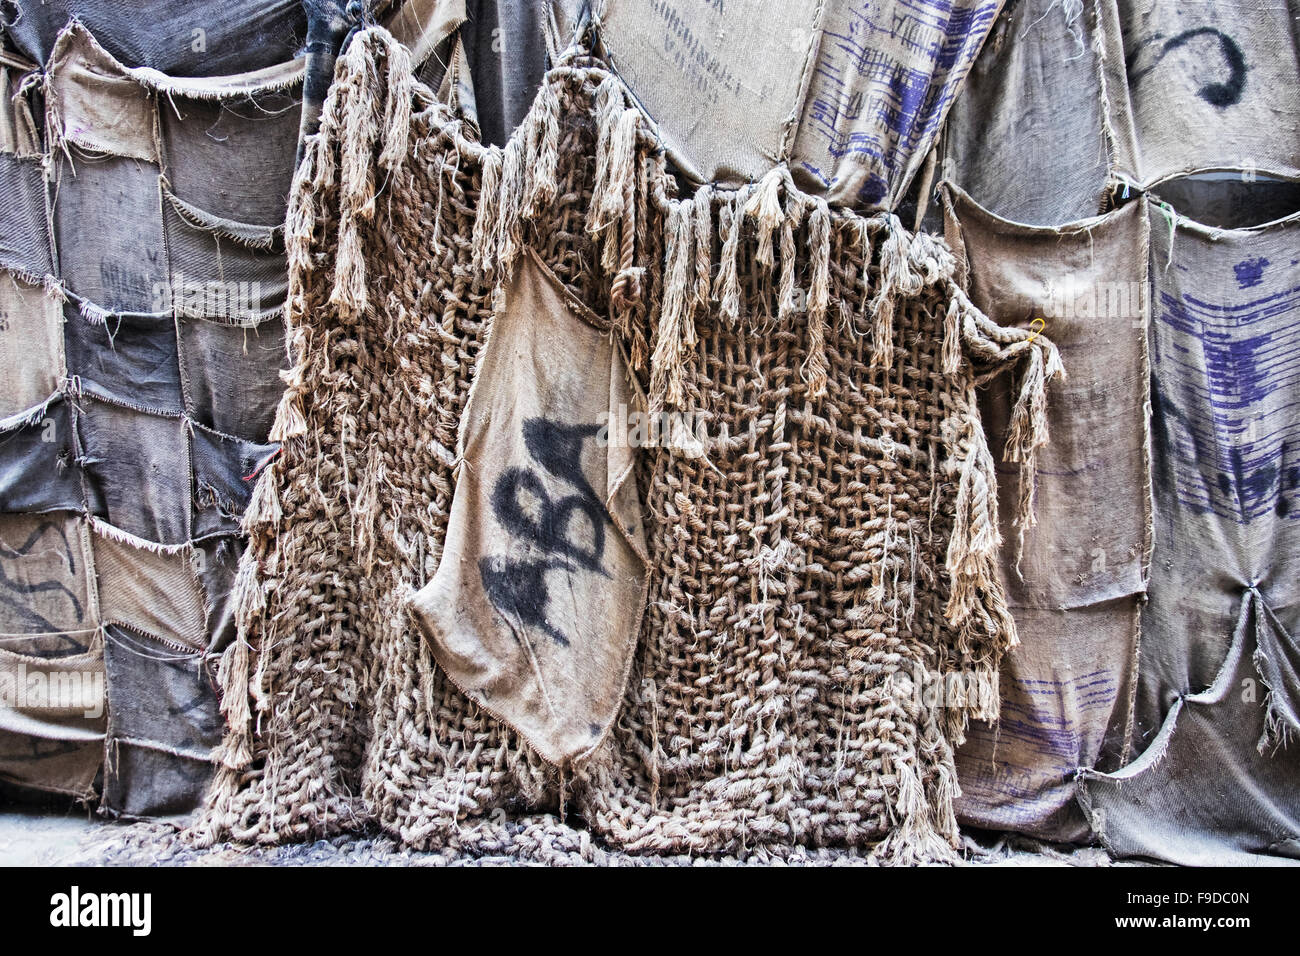 'Out of Bounds' huge artwork made of old sacks by Ibrahim Mahama  at the 2015 56th Venice Biennale.La Biennale - Stock Image